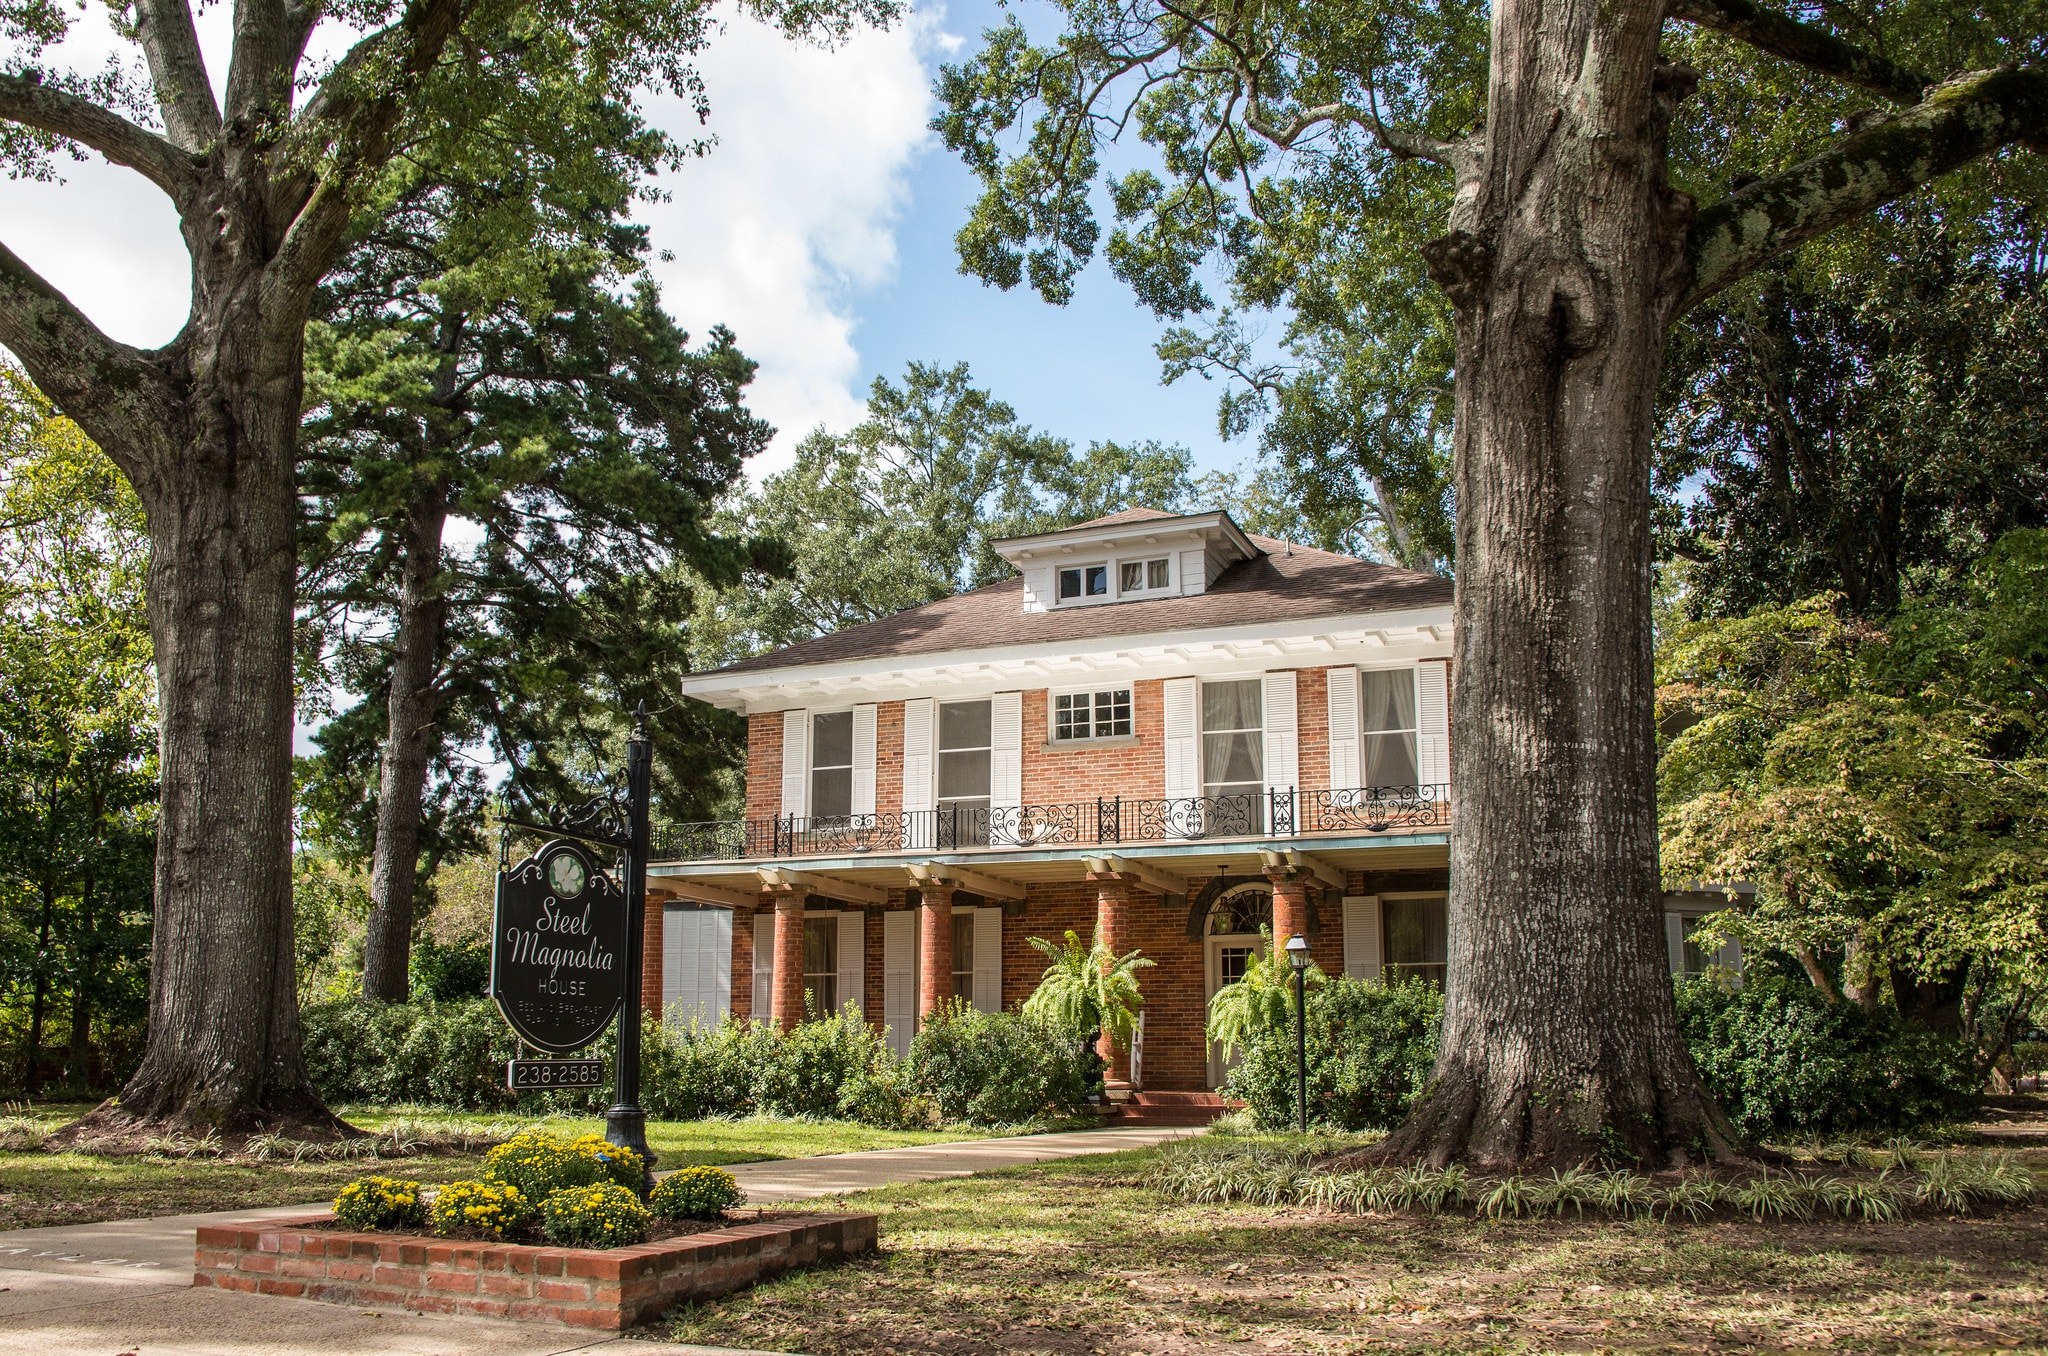 You Can Actually Sleep In The Mansion From Steel Magnolias